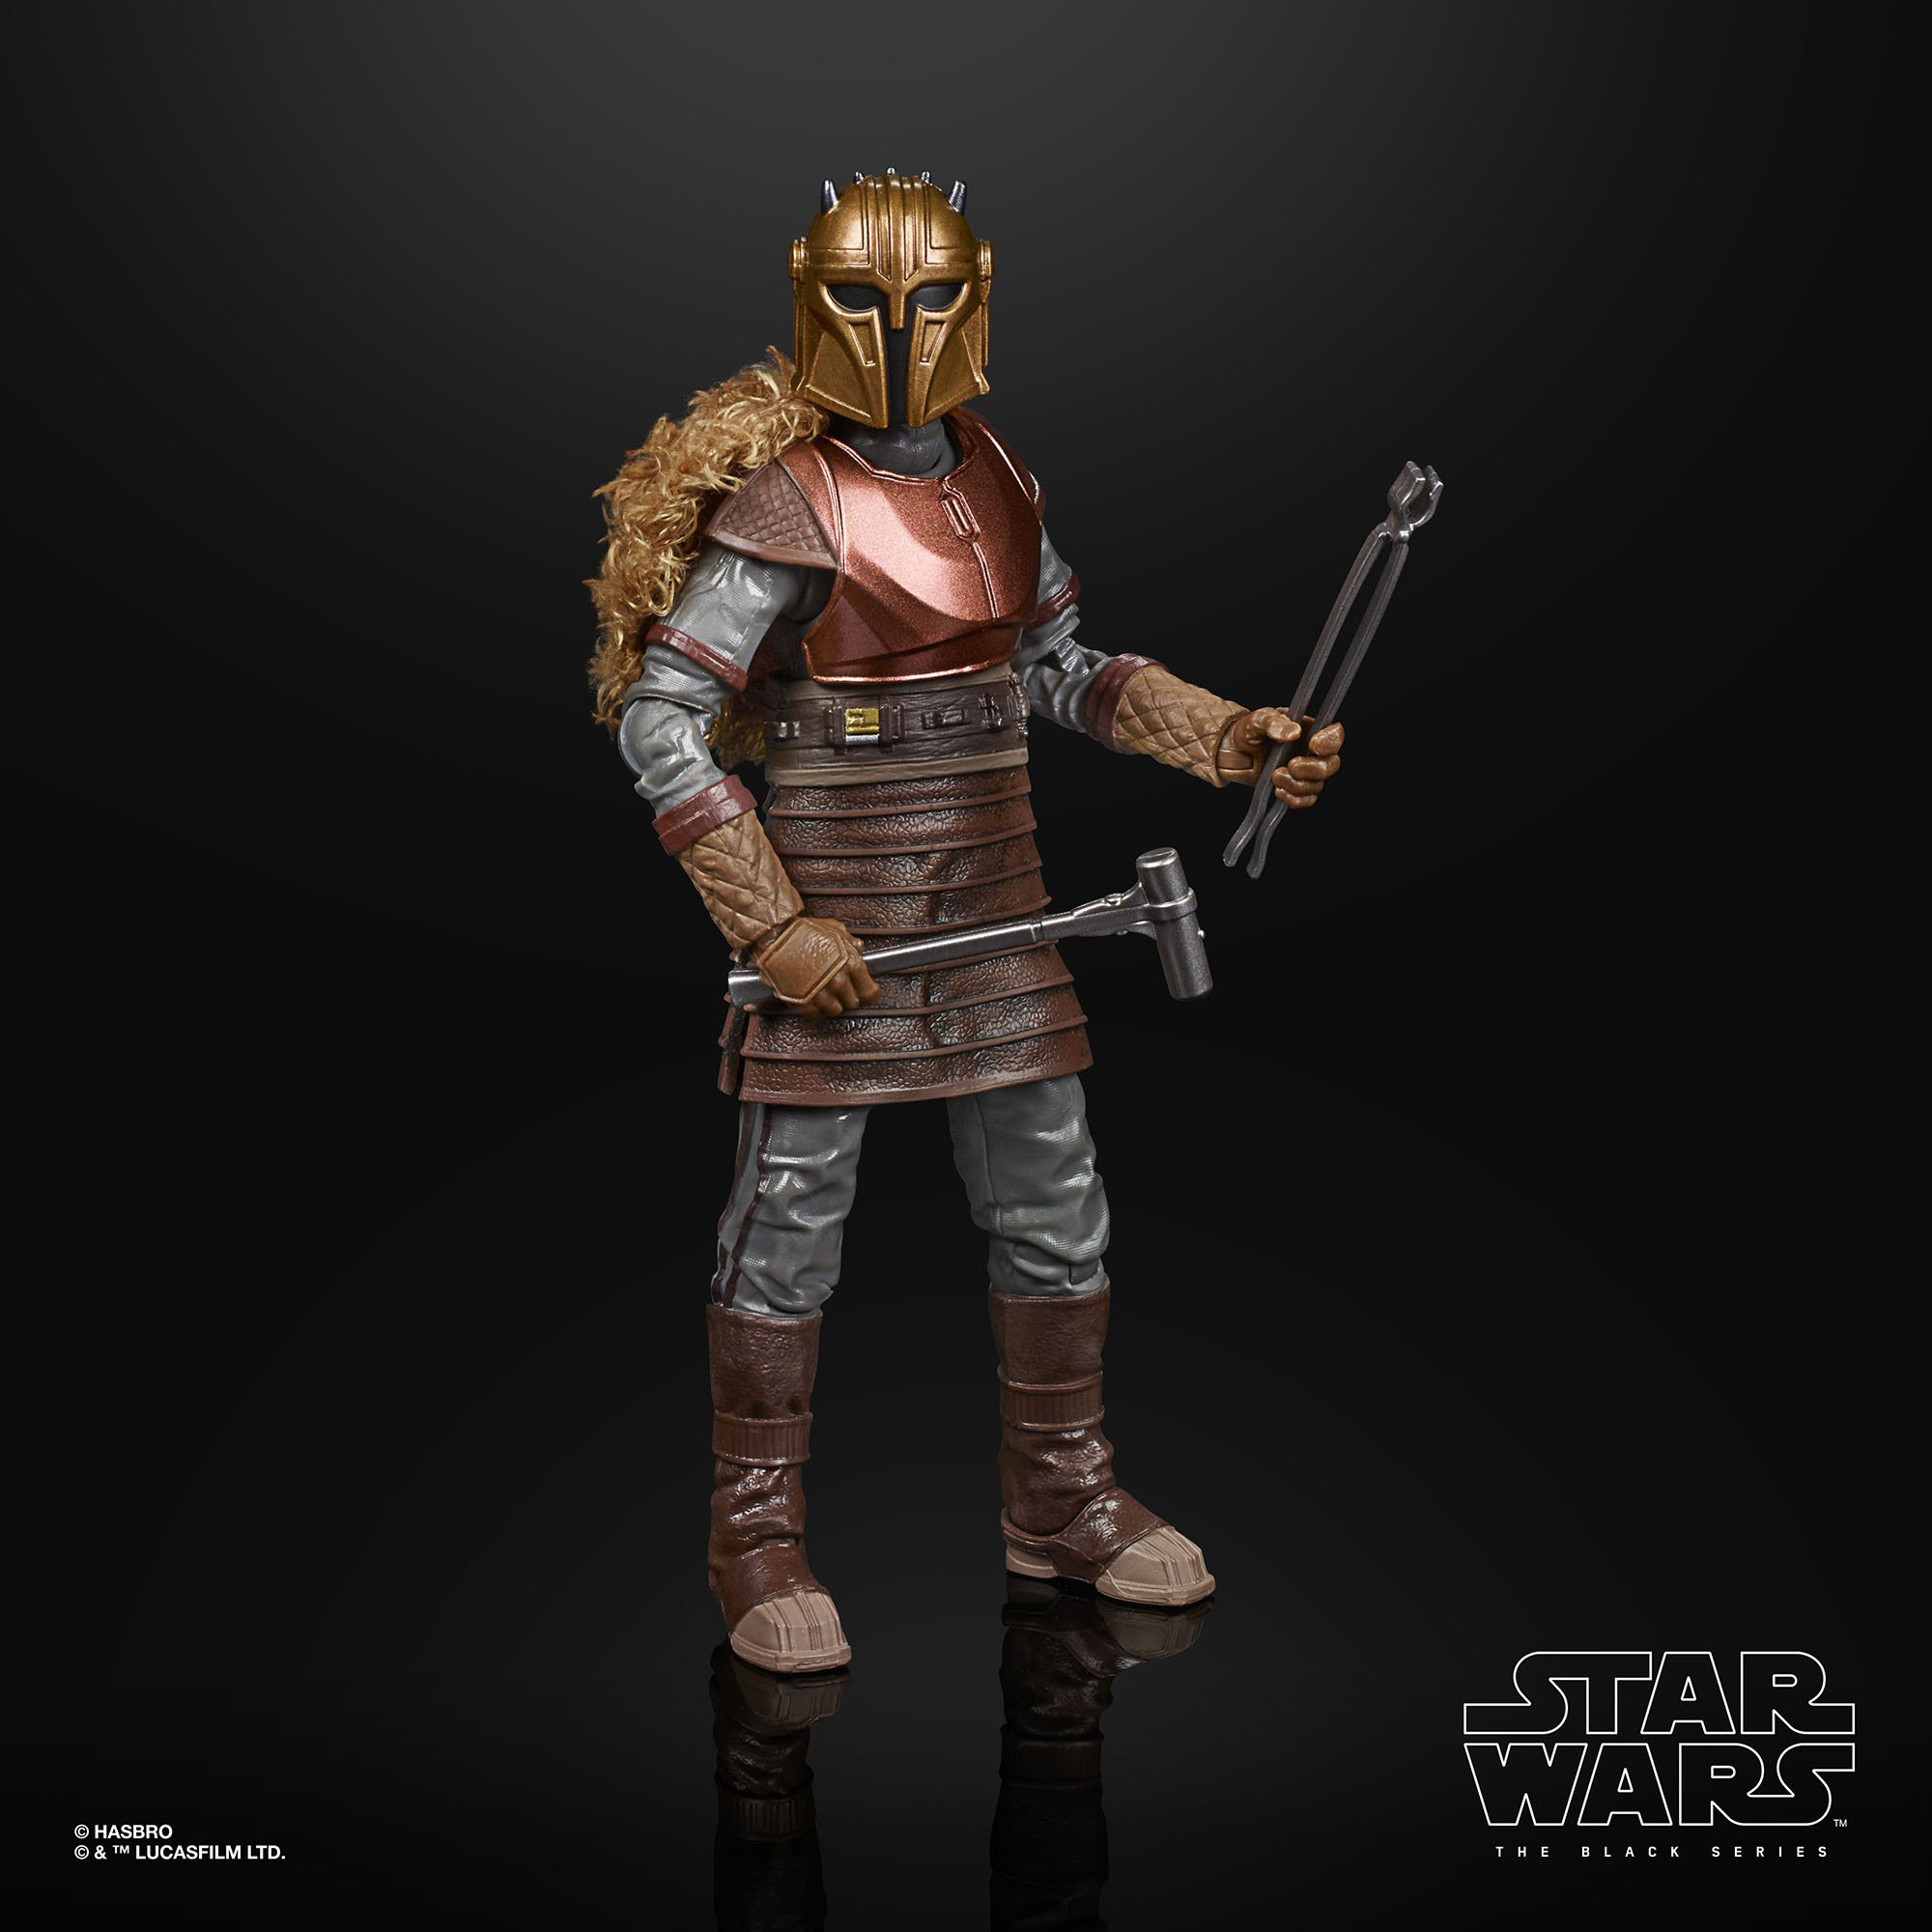 star-wars-black-series-the-armorer-mandalorian-action-figure-6